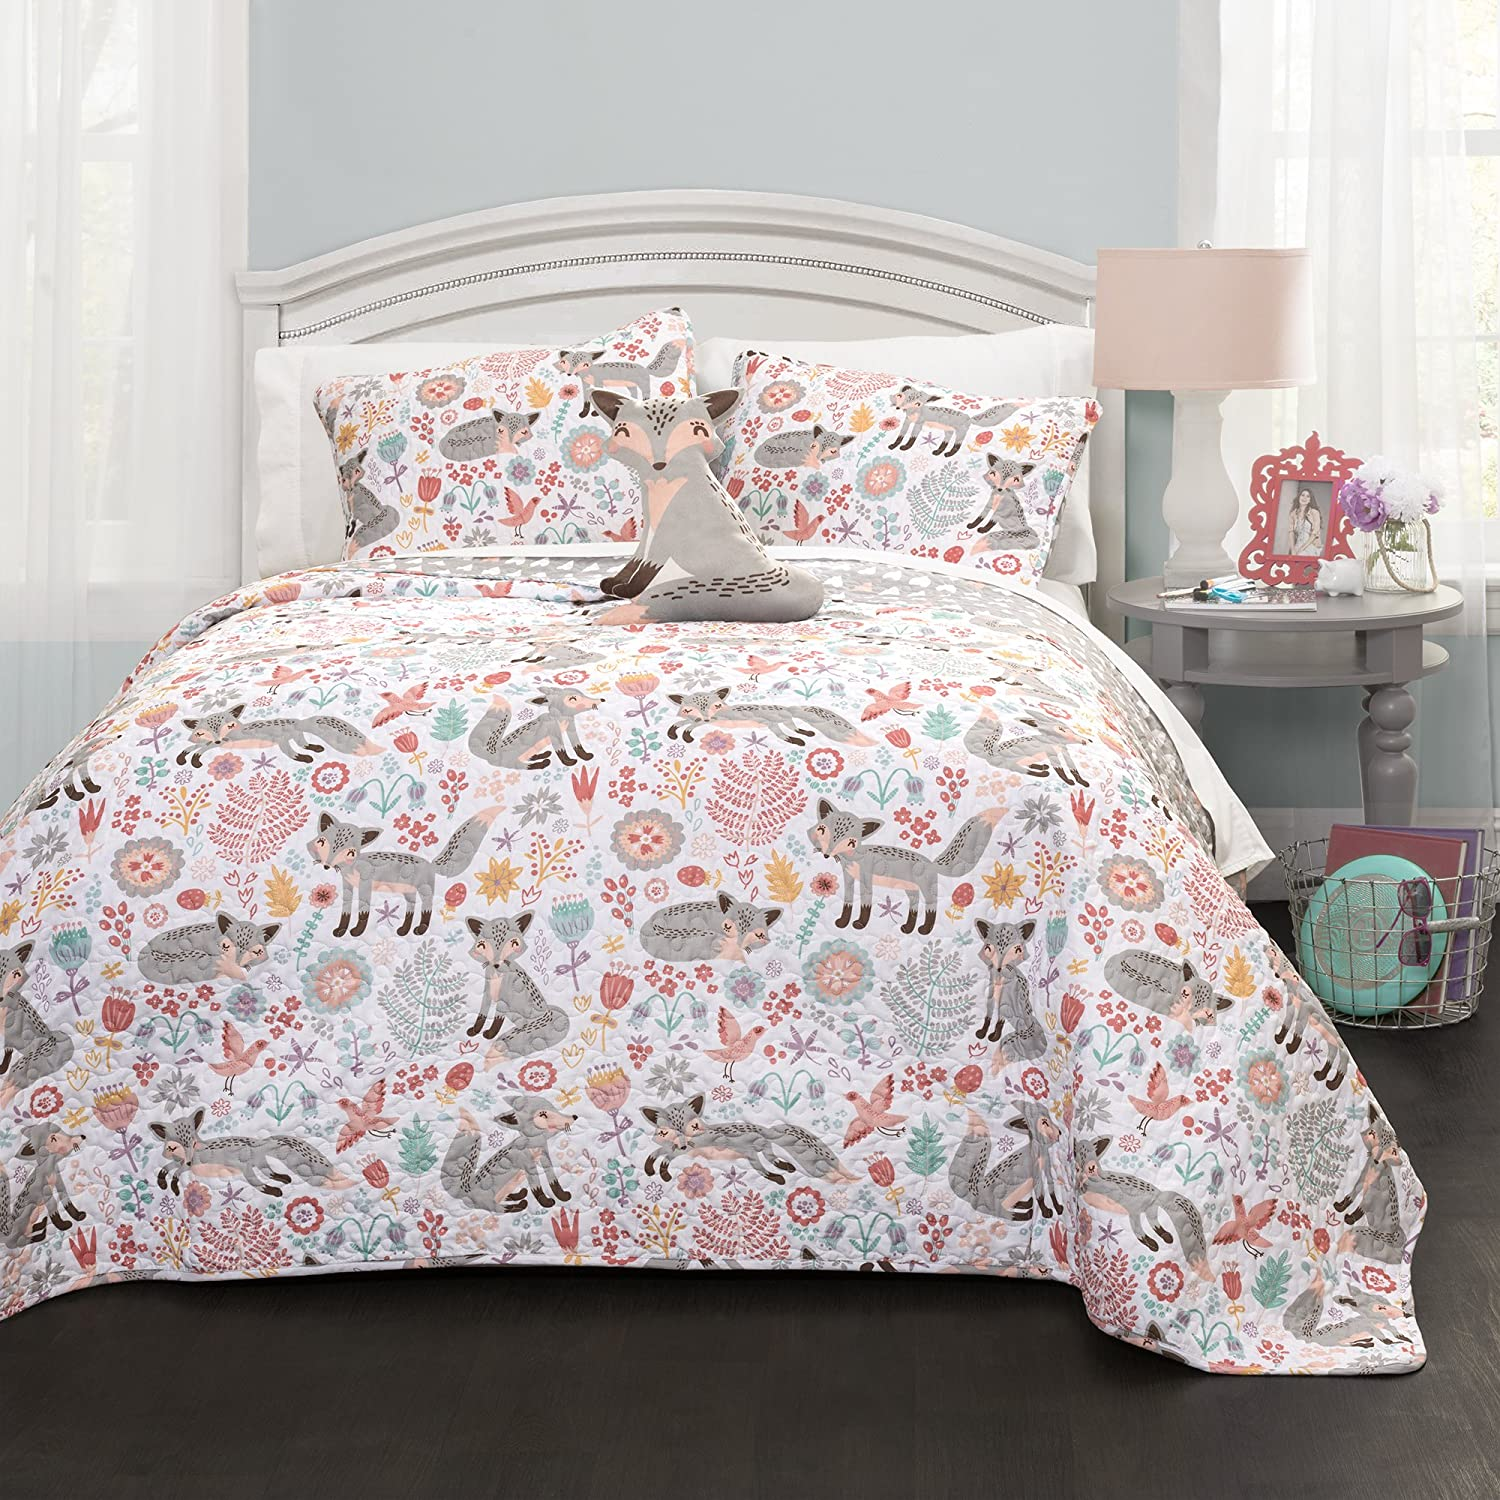 Lush Decor Pixie Fox Quilt Reversible 4 Piece Bedding Set - Gray/Pink - Full/Queen Quilt Set